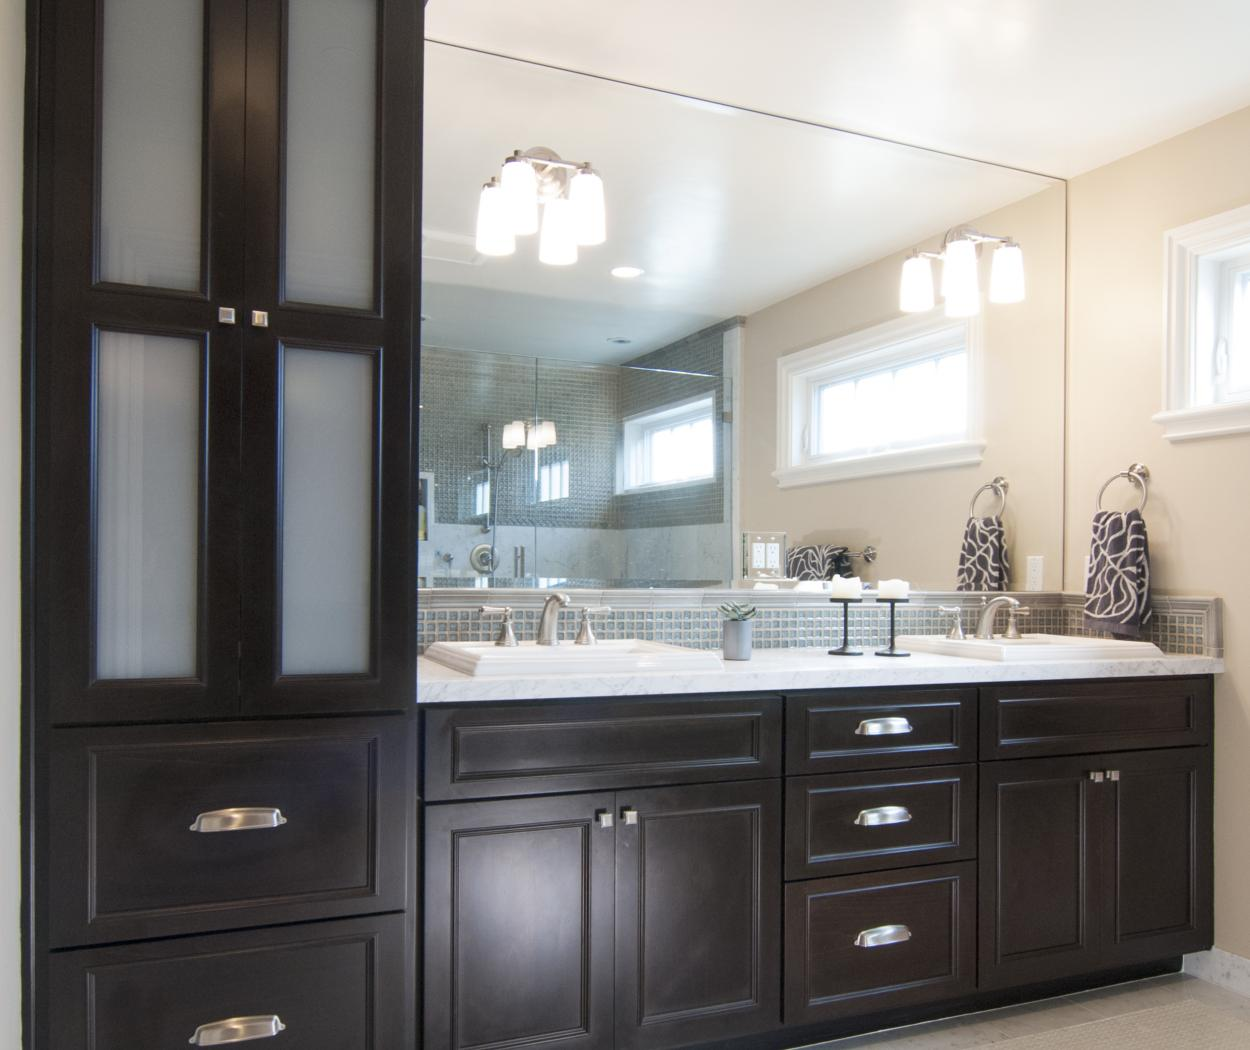 Transitional Dark Espresso Stained Master Bathroom Vanity with Double Sinks, Silver Hardware and a White Marble Counter Top